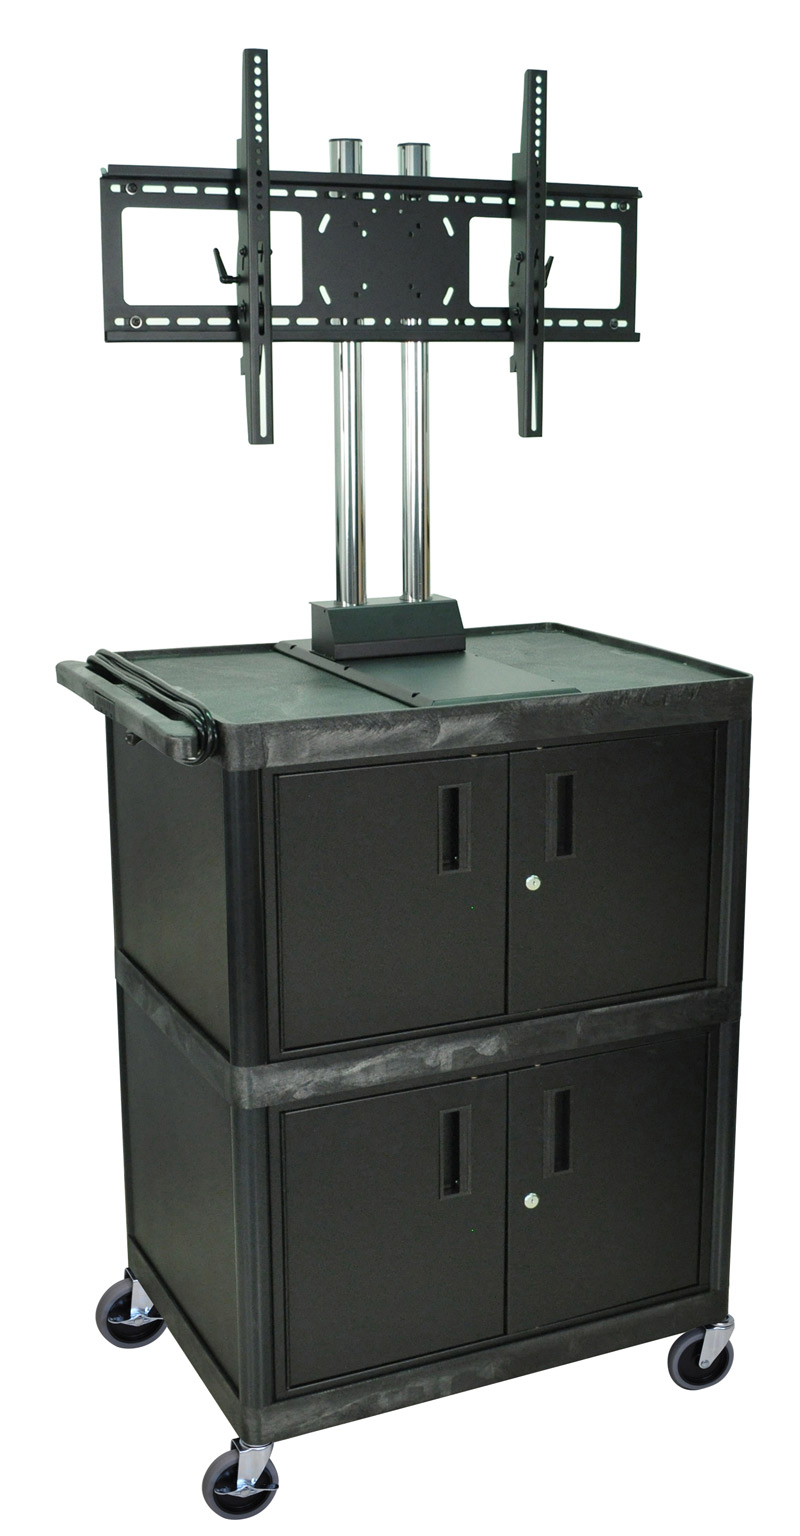 Superbe H Wilson Black 3 Shelf Mobile Cart W/ 2 Cabinets And Universal LCD TV Mount